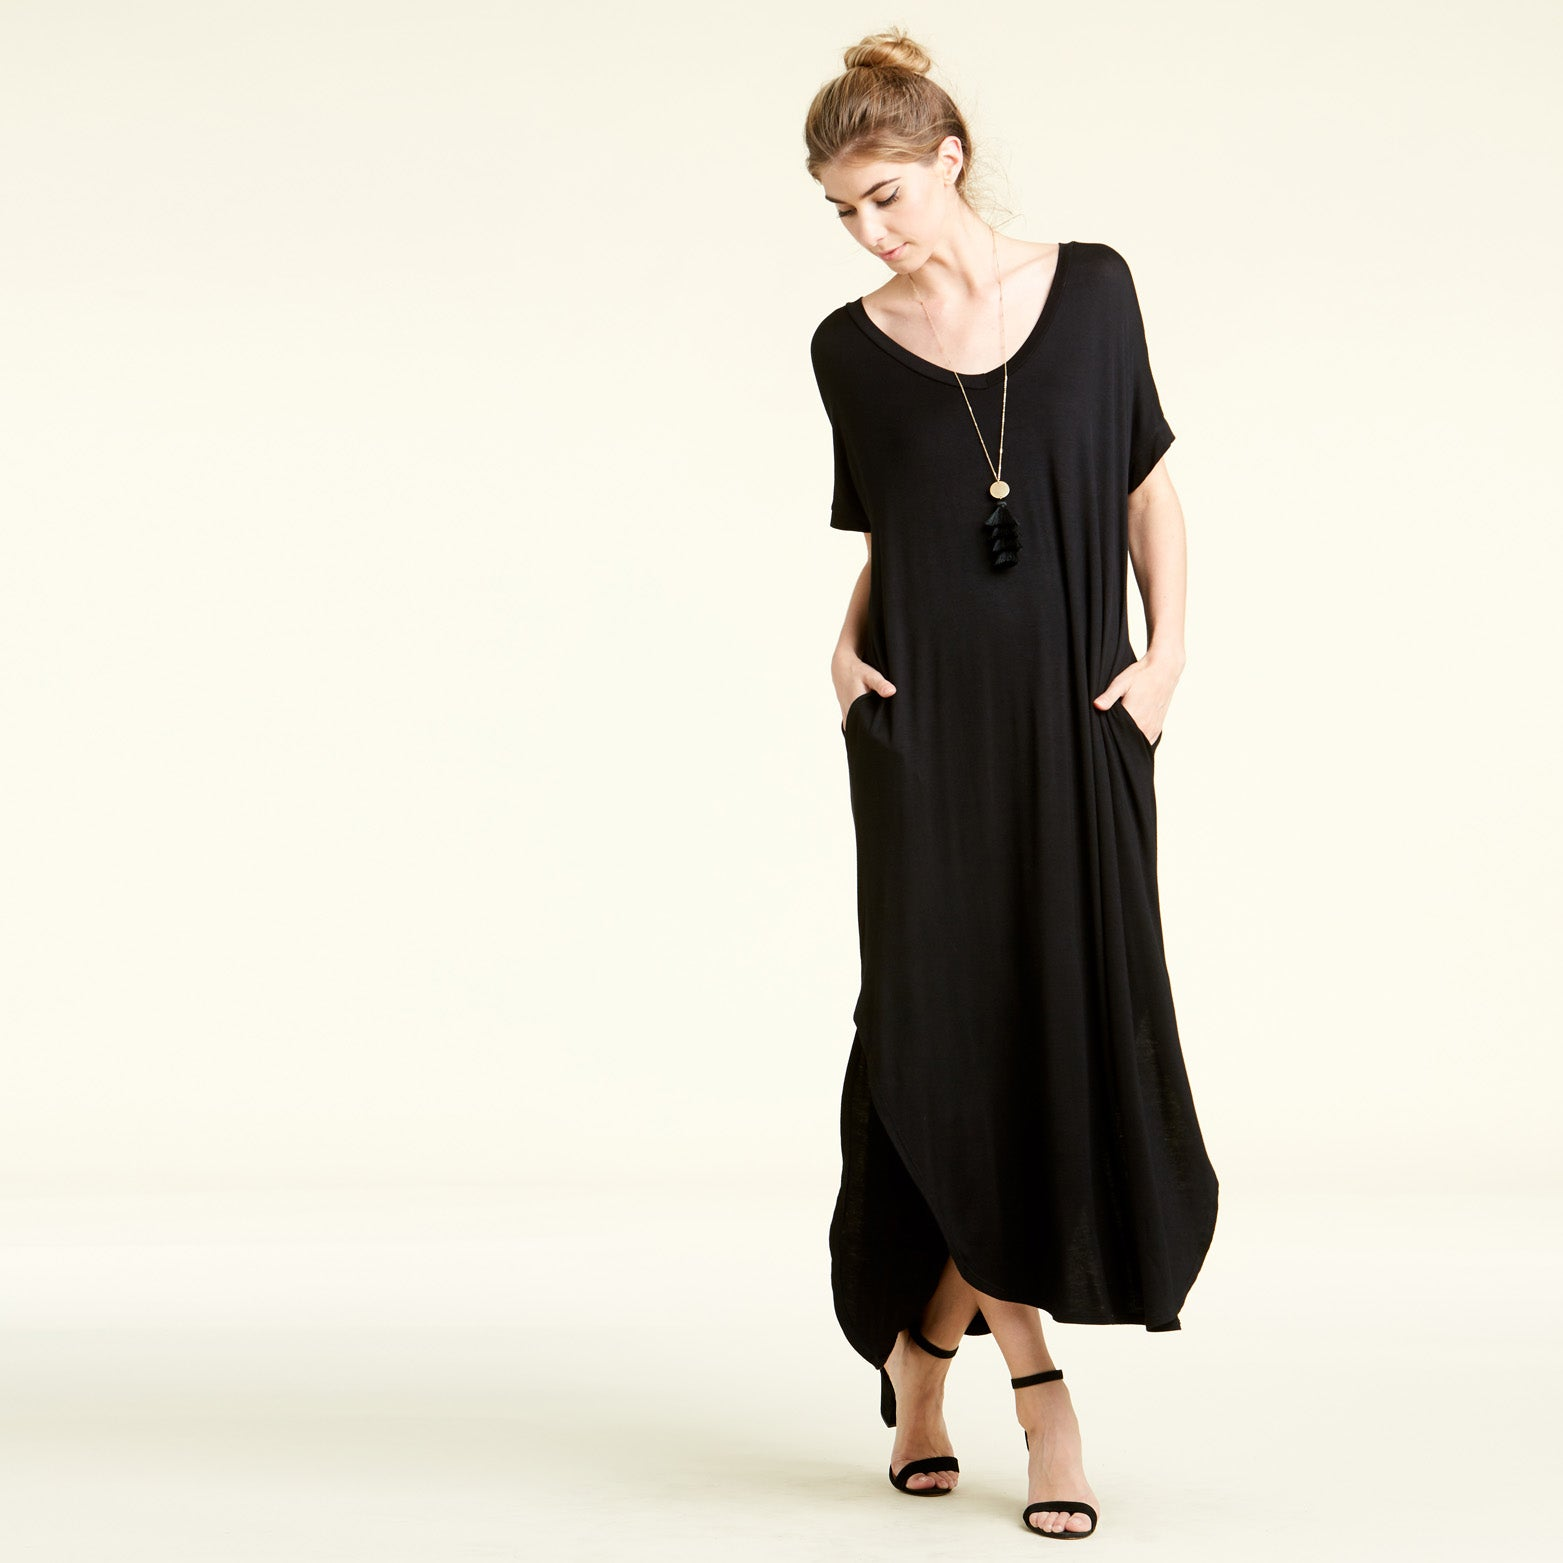 RL Black Maxi Dress - Love, Kuza